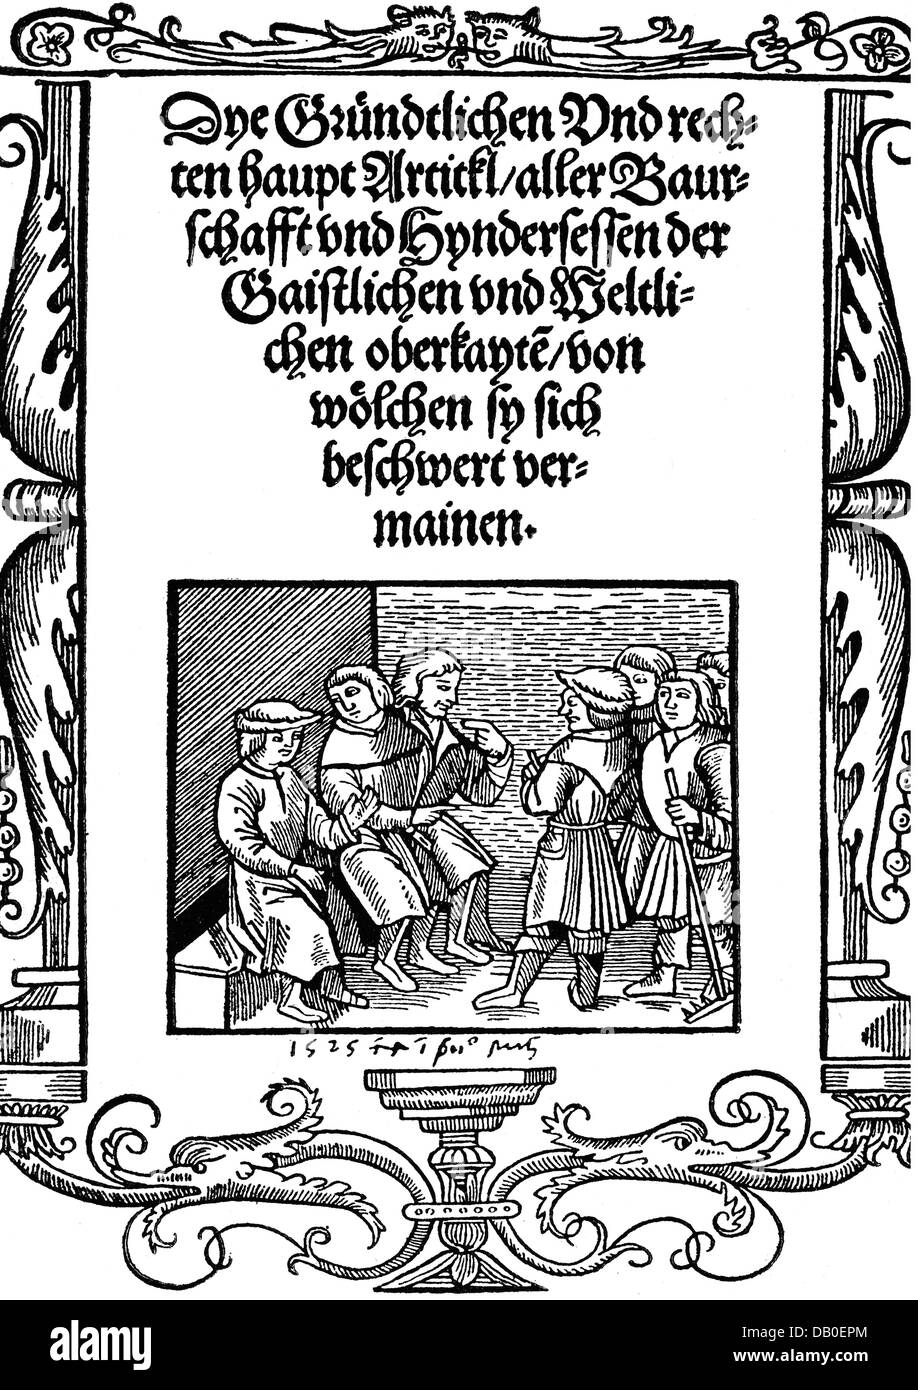 peasant revolt 1524 dbq We will write a cheap essay sample on martin luther and peasants revolt in germany in 1524-1525 specifically for you for series of revolts known as the bundschuh movement (circa 1440-1530), hungarian peasants revolt (1514) and s number of minor disorders peasant revolt dbq.